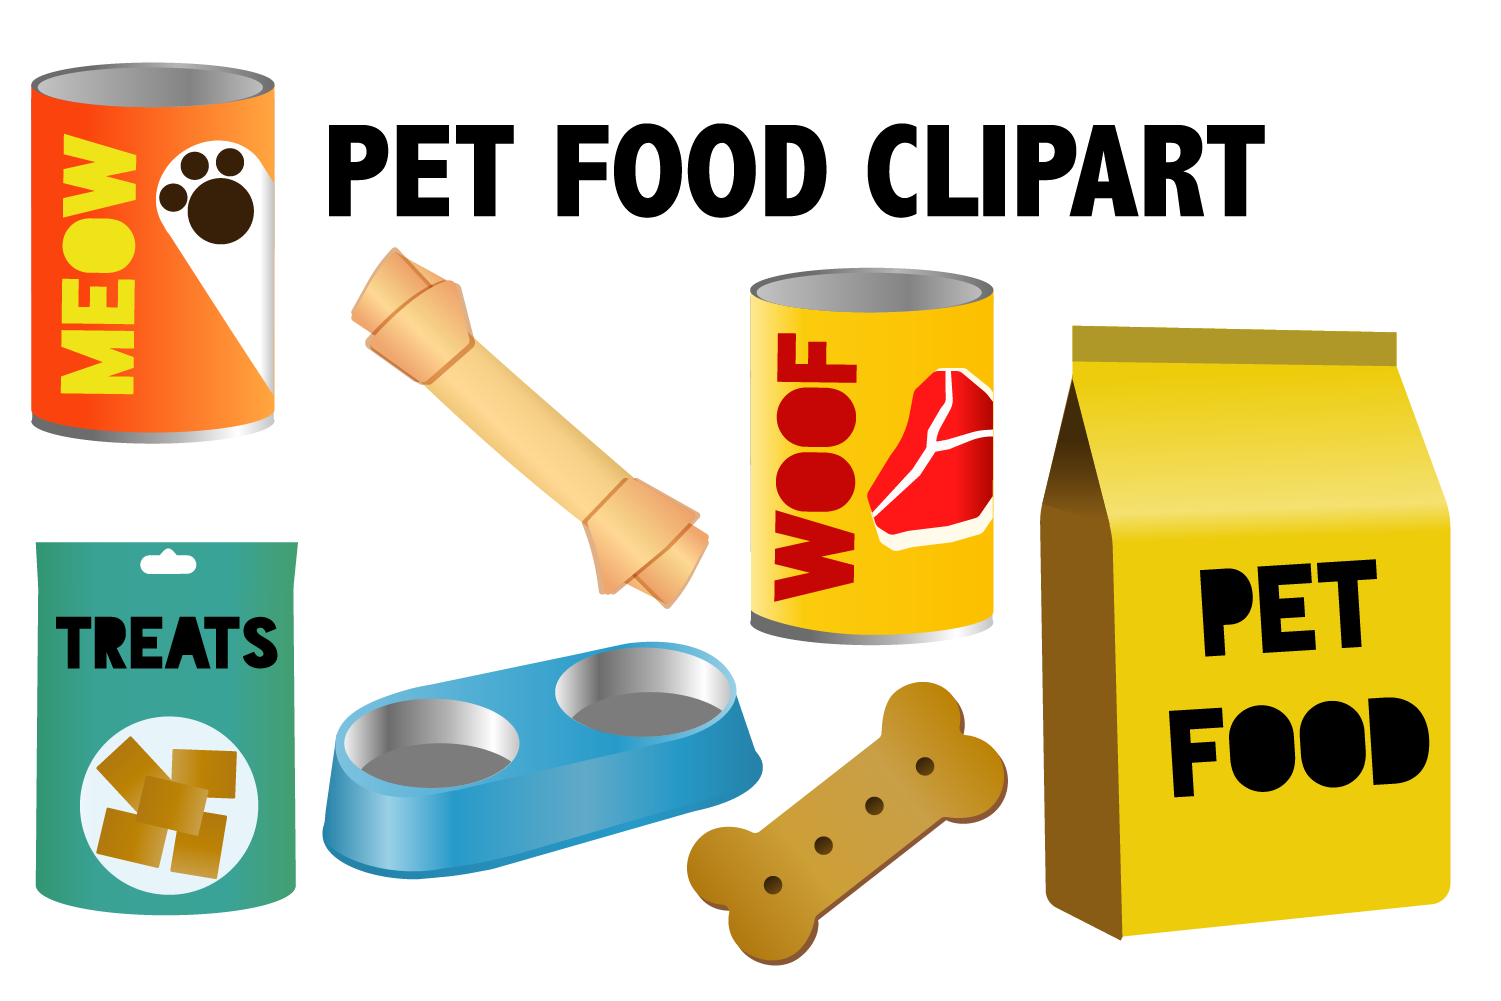 Pet Food Clipart Graphic by Mine Eyes Design - Creative ...